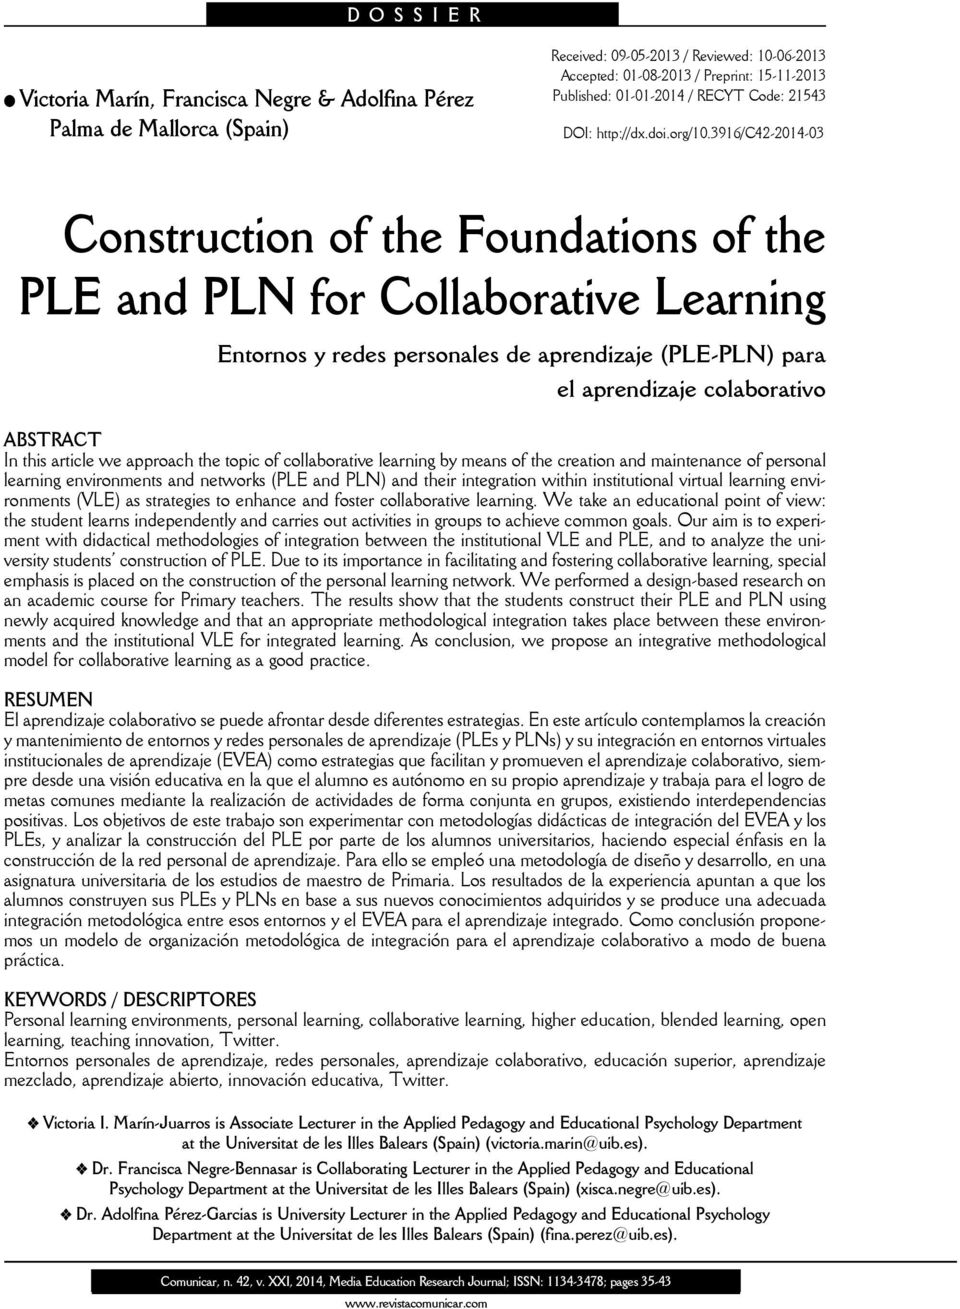 3916/c42-2014-03 Construction of the Foundations of the PLE and PLN for Collaborative Learning Entornos y redes personales de aprendizaje (PLE-PLN) para el aprendizaje colaborativo ABSTRACT In this